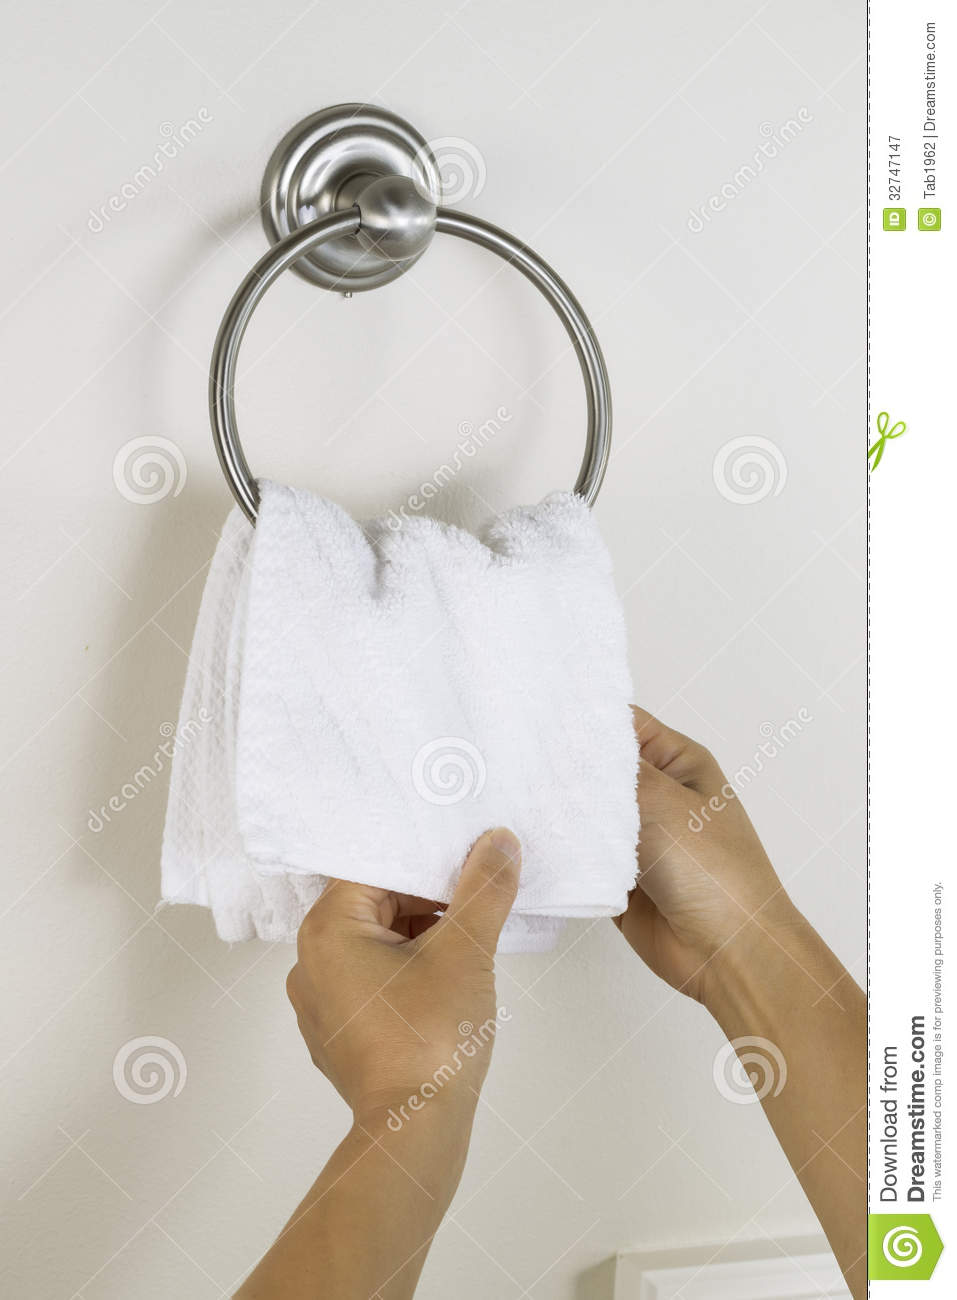 Female Hands Putting Clean Wash Cloth On Towel Ring Holder